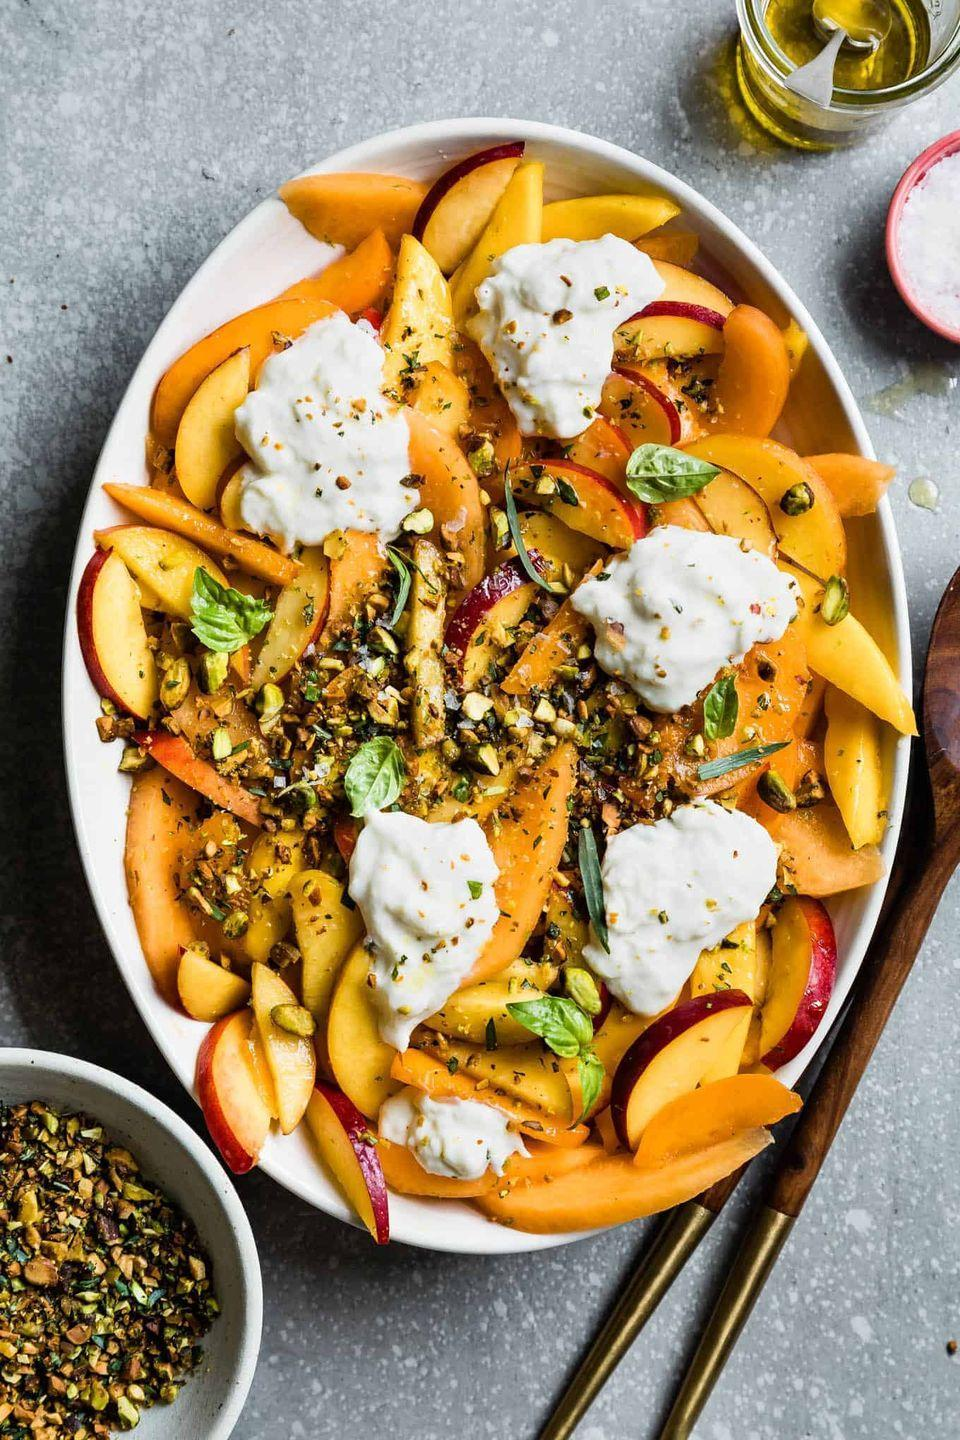 """<p>Proof that you don't need lettuce to create a delicious and relatively healthy vegetarian side dish. </p><p><a href=""""https://www.snixykitchen.com/summer-fruit-salad-with-herbed-pistachio-crumble/"""" rel=""""nofollow noopener"""" target=""""_blank"""" data-ylk=""""slk:Get the recipe."""" class=""""link rapid-noclick-resp"""">Get the recipe. </a></p>"""